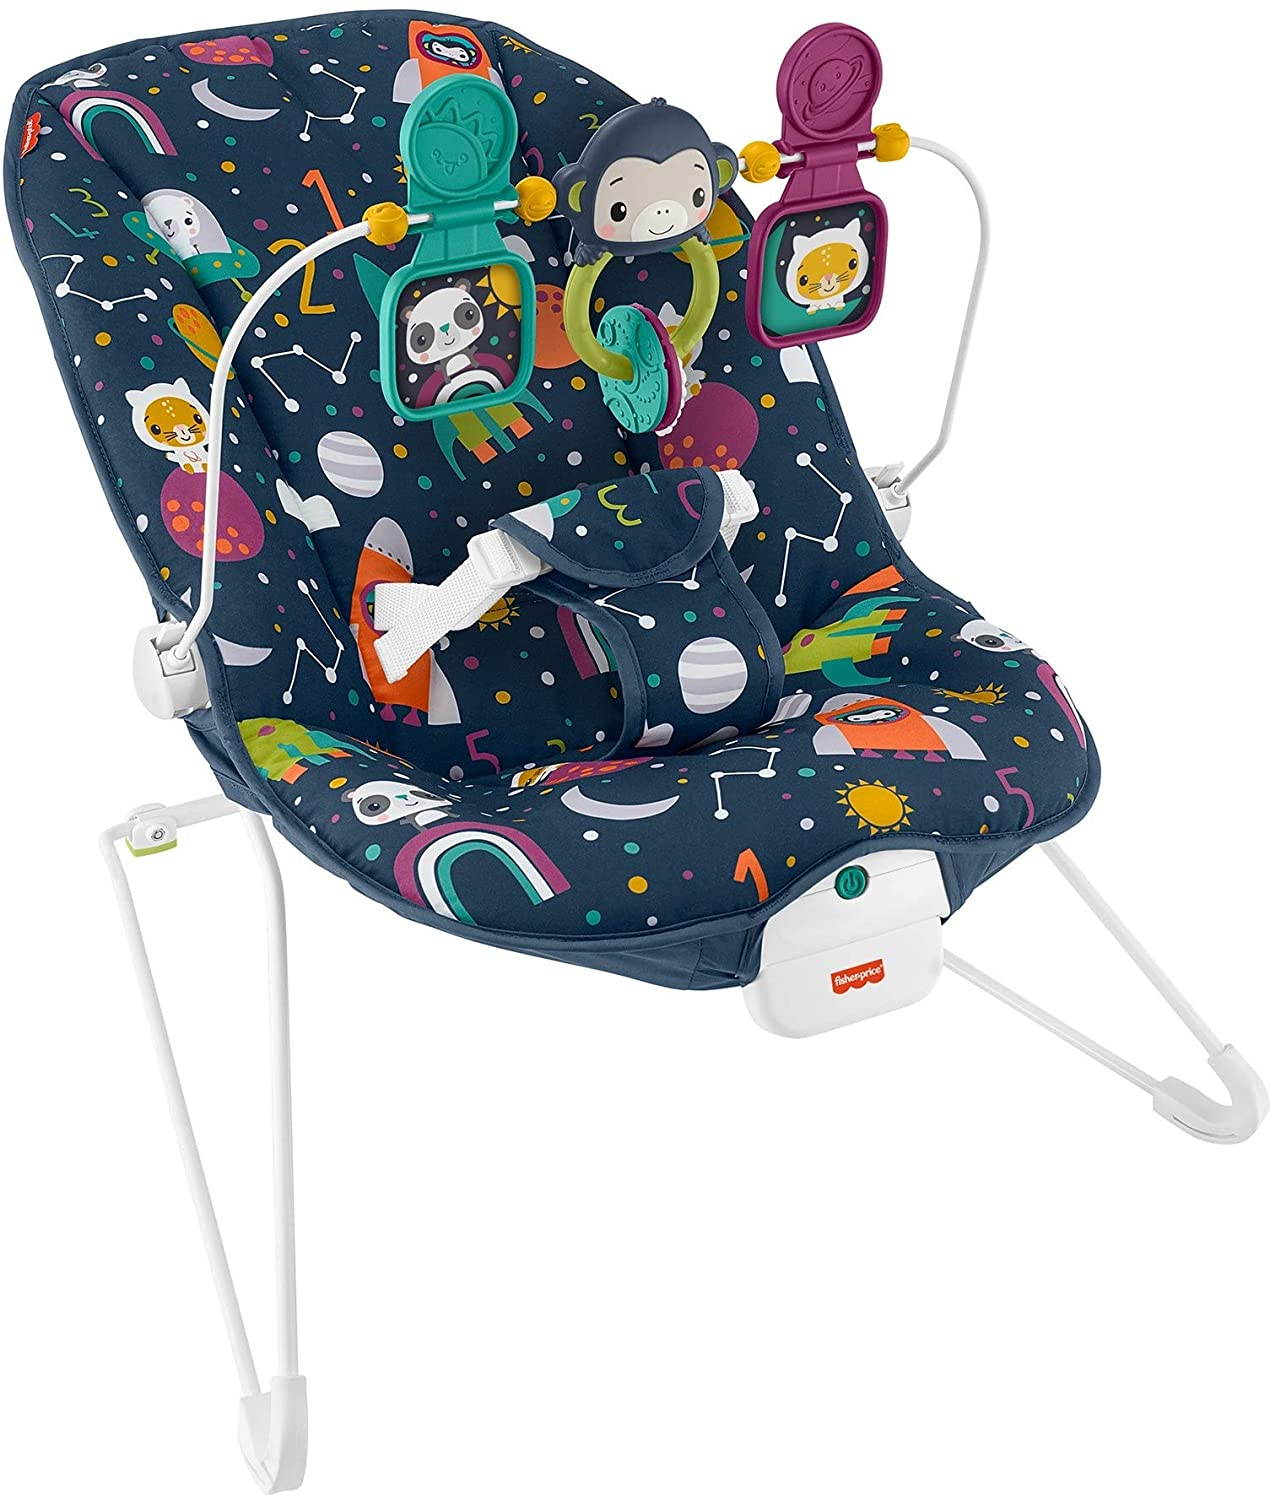 Fisher-Price Baby's Bouncer Soothing Seat Astro-Kitty, Soothing Bouncing Chair for Infants